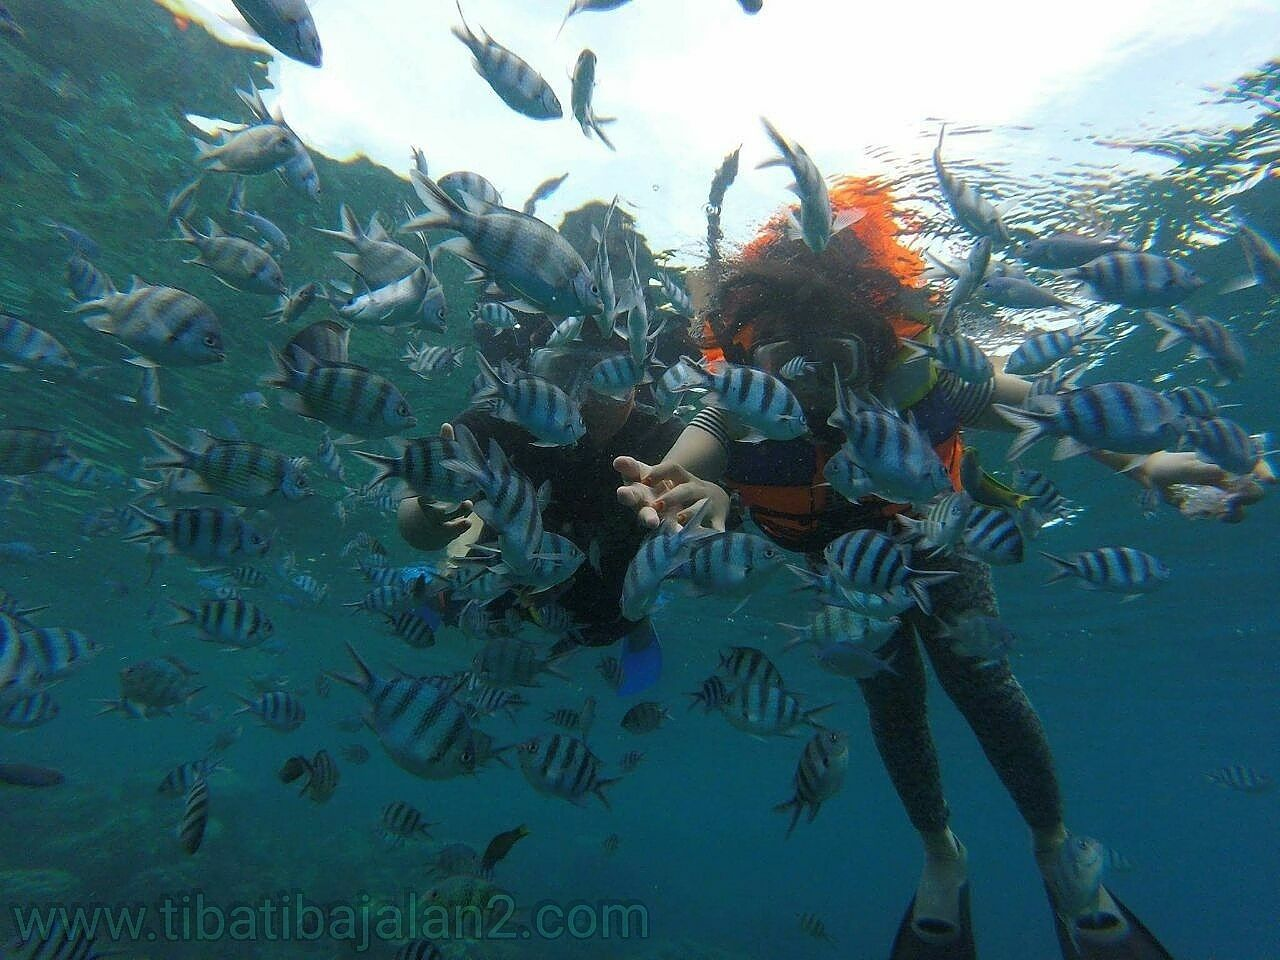 OpenTrip 3D 2N,, 27-29 Mei Only 960K/Pack meeting Point Lenteng Agung - Jakarta. 081368661594. www.tibatibajalan2.comOpentrip Nature Photography Sea_collection Indonesia_photography Wonderful Indonesia Visitindonesia Travel Destinations Travelphotography Traveling Indonesiatraveler Karimunjawaisland Karimunjawatrip